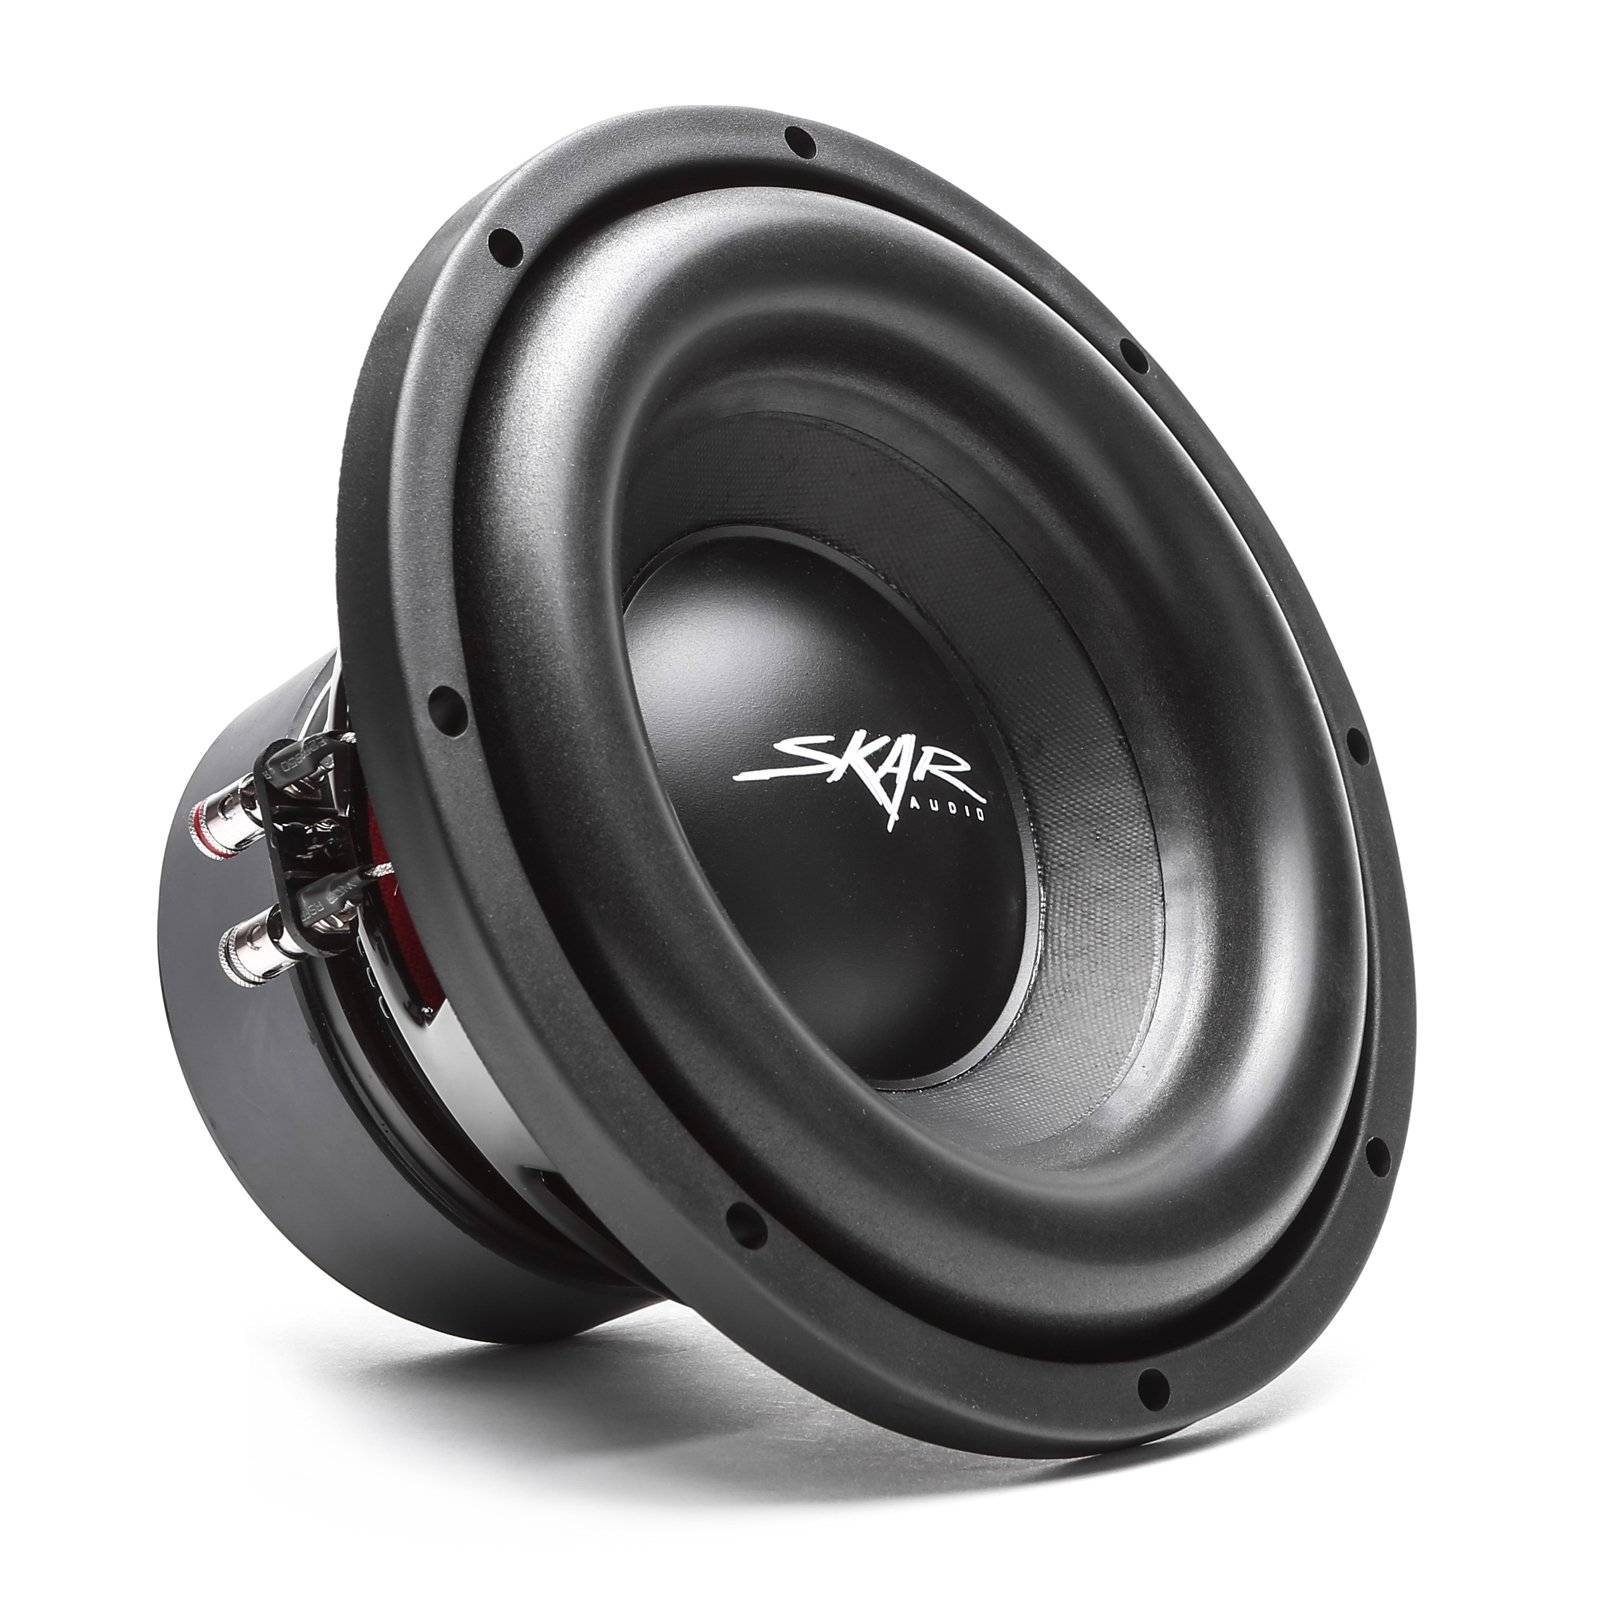 Skar Audio SDR-10 D4 10-inch 1200 Watt Max Power Dual 4 Ohm Car Subwoofer